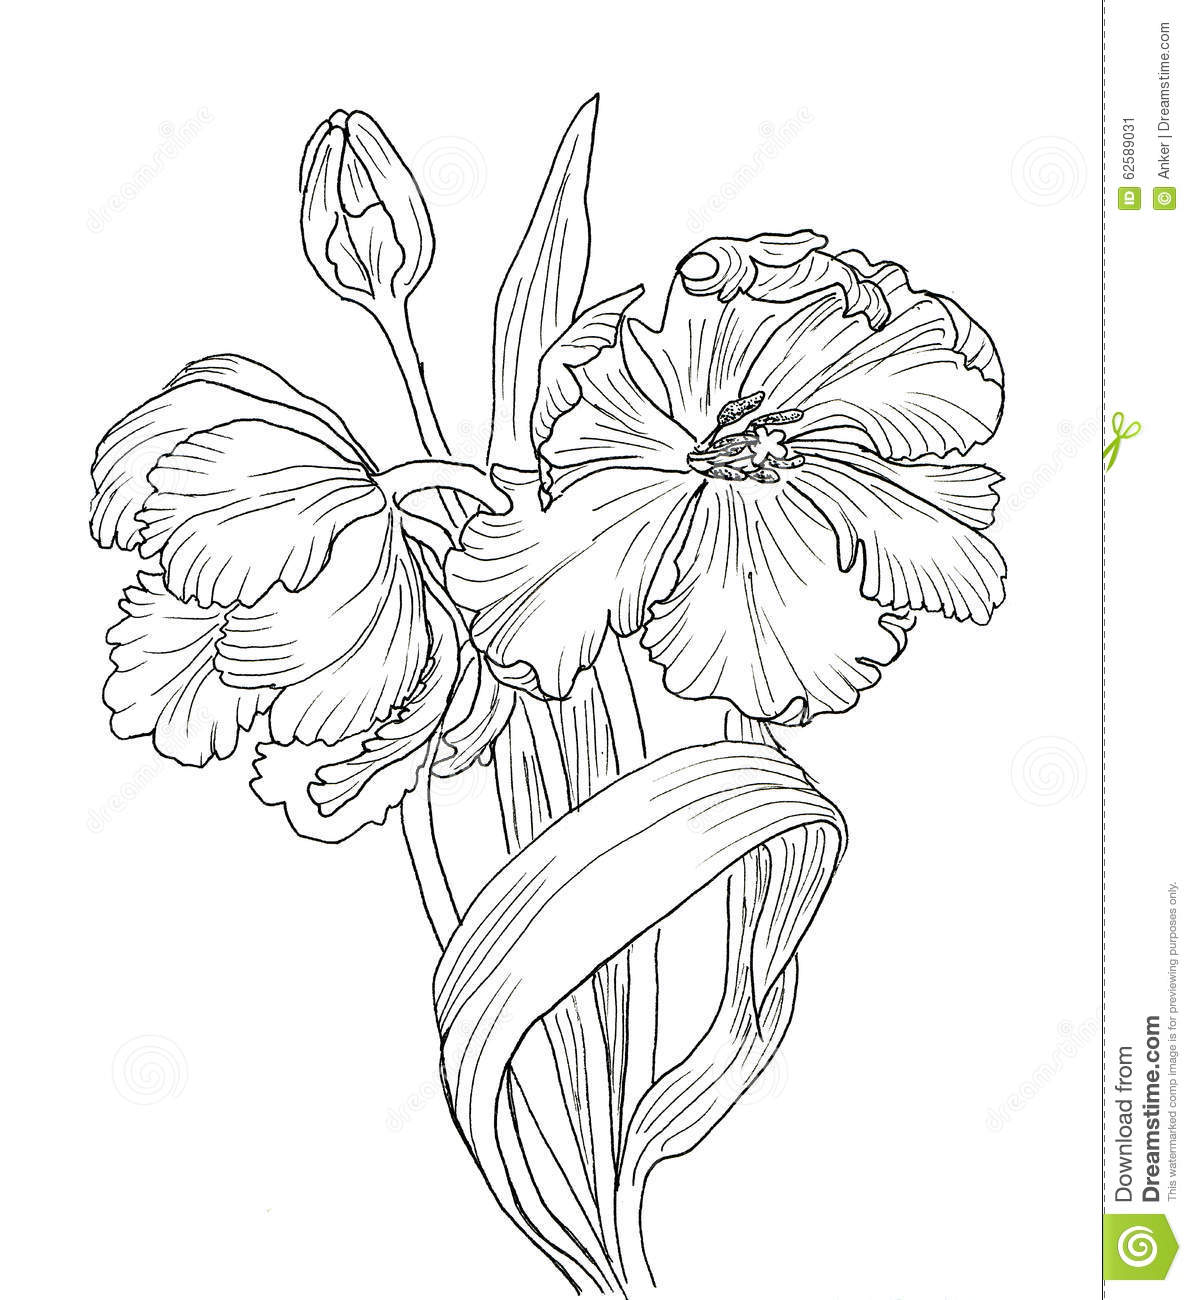 Line Drawing Tulip : Hand drawn decorative tulips for your design stock